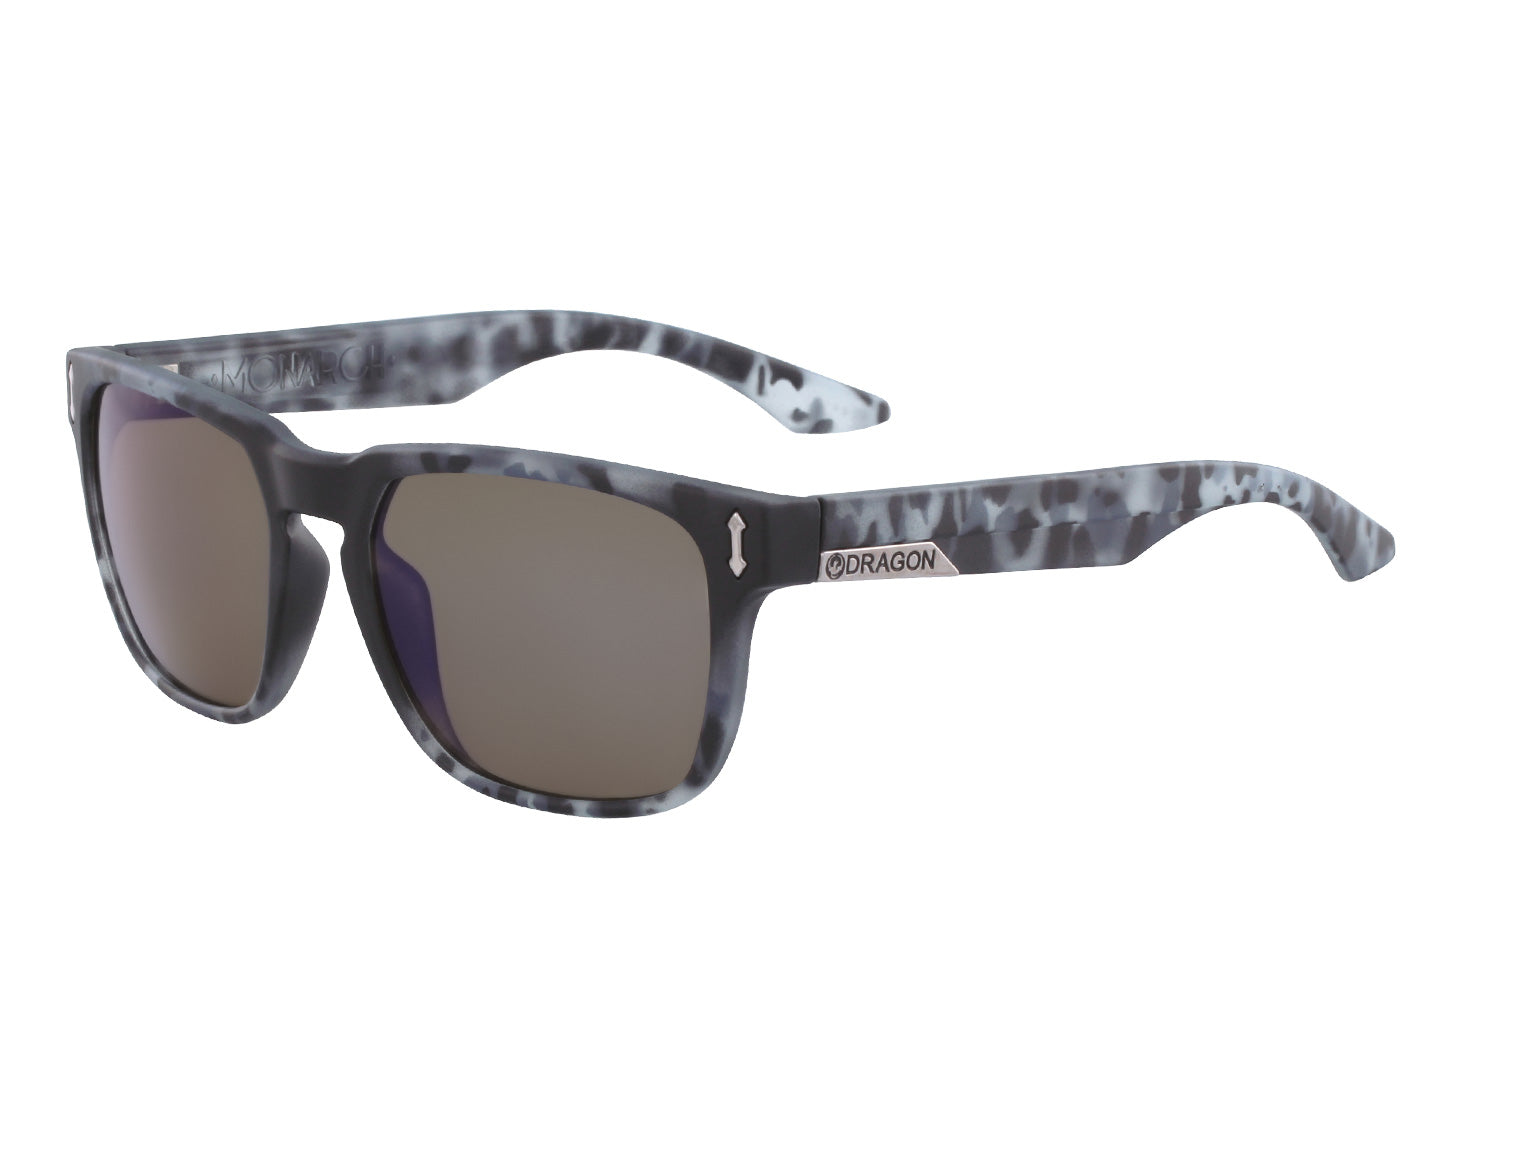 MONARCH - Matte Midnight Tortoise ; with Lumalens Blue Ionized Lens